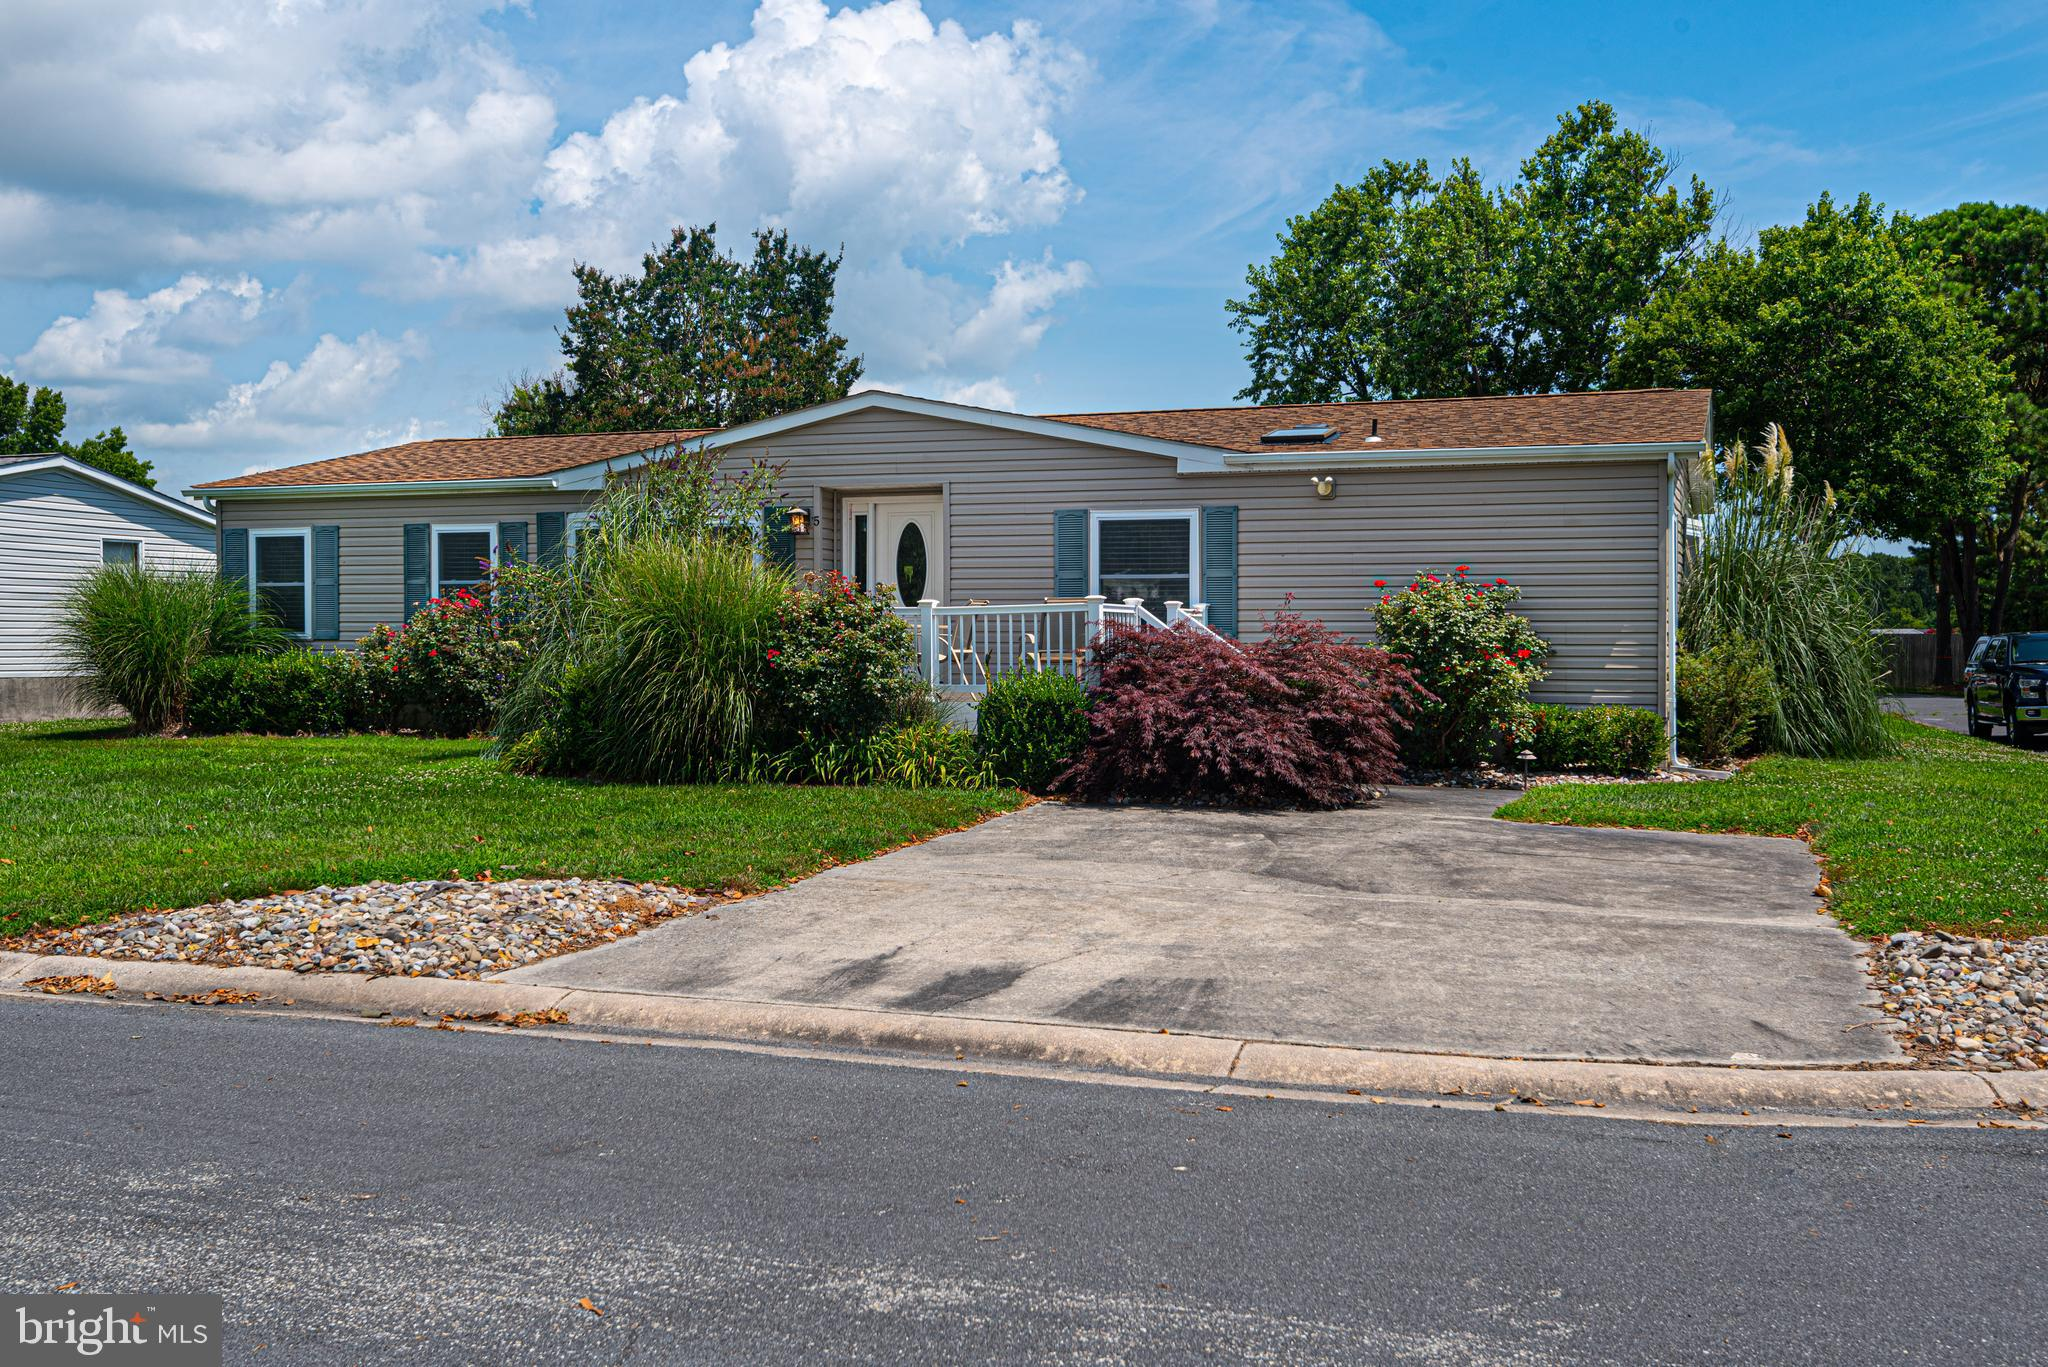 Don't miss out on this home. Very well maintained house. Enjoy all that West Ocean City has to offer. Short ride to Ocean City.  List of recent upgrades: Full kitchen remodel with new appliances in 2018. Both bathrooms fully remodeled in 2018. New washer and dryer. New carpet throughout house in 2018. Front deck refinished in 2017. Back deck refinished in 2021. All new windows and doors in 2021. Roof is less than 10 years old. Yard fully landscaped with landscape lighting